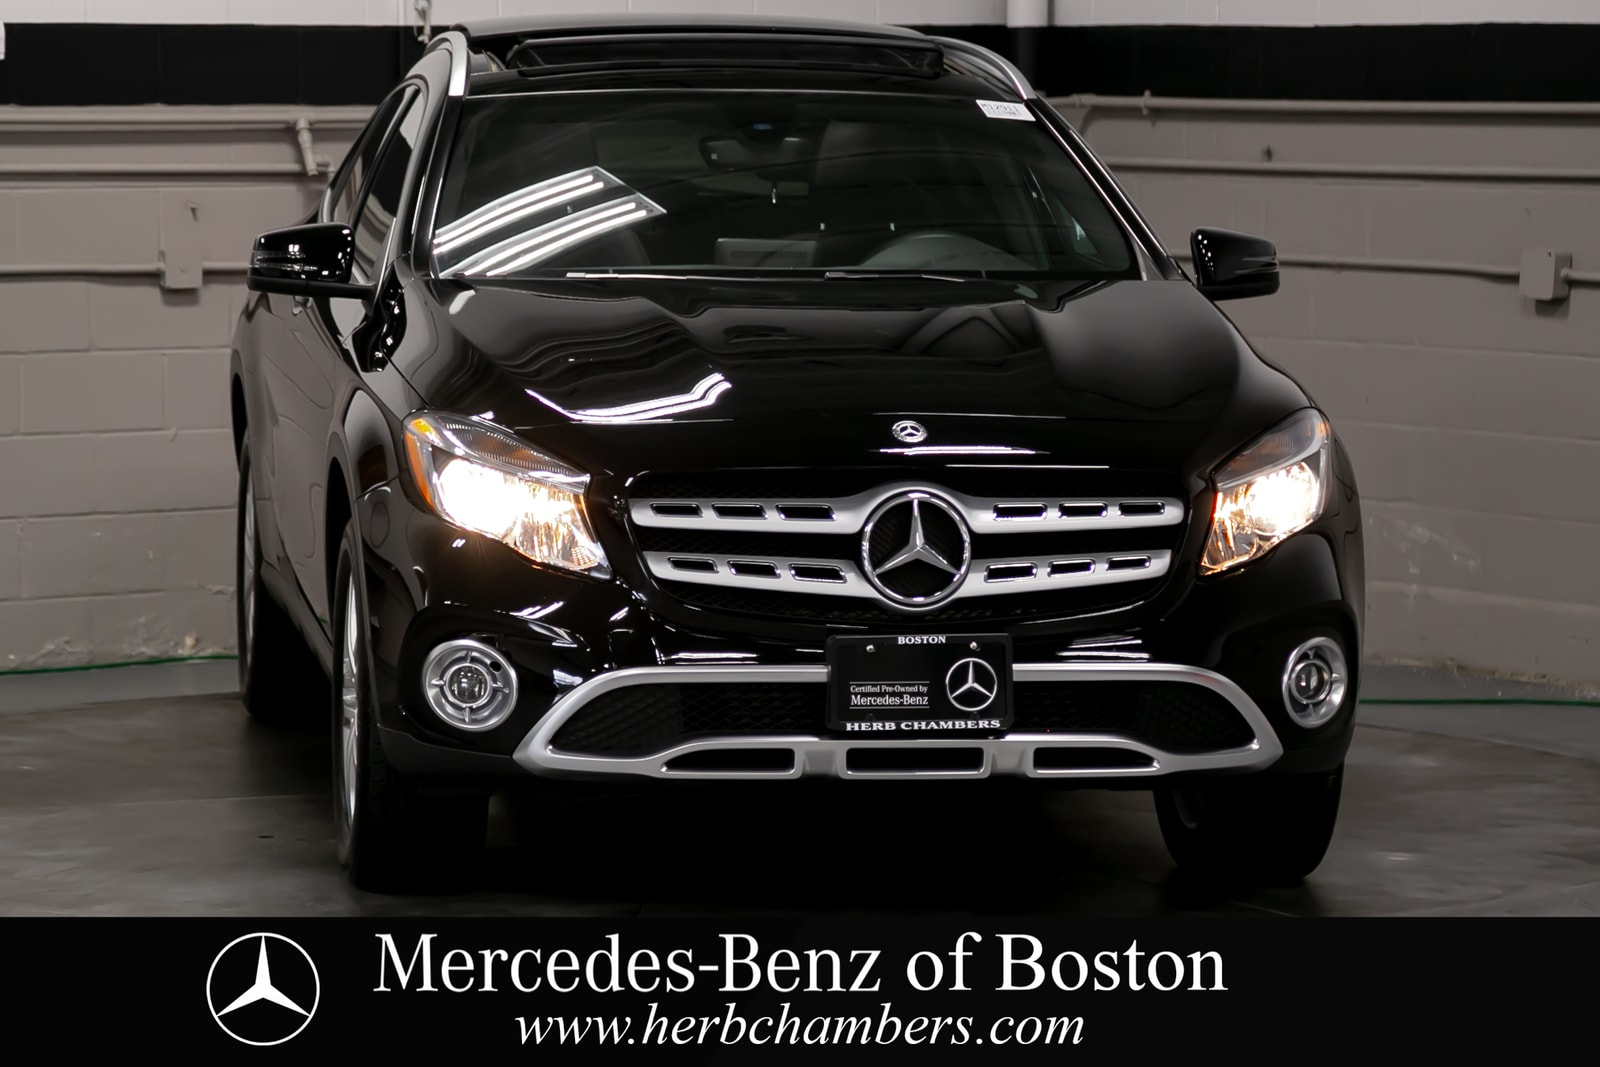 used 2018 Mercedes-Benz GLA 250 car, priced at $33,998